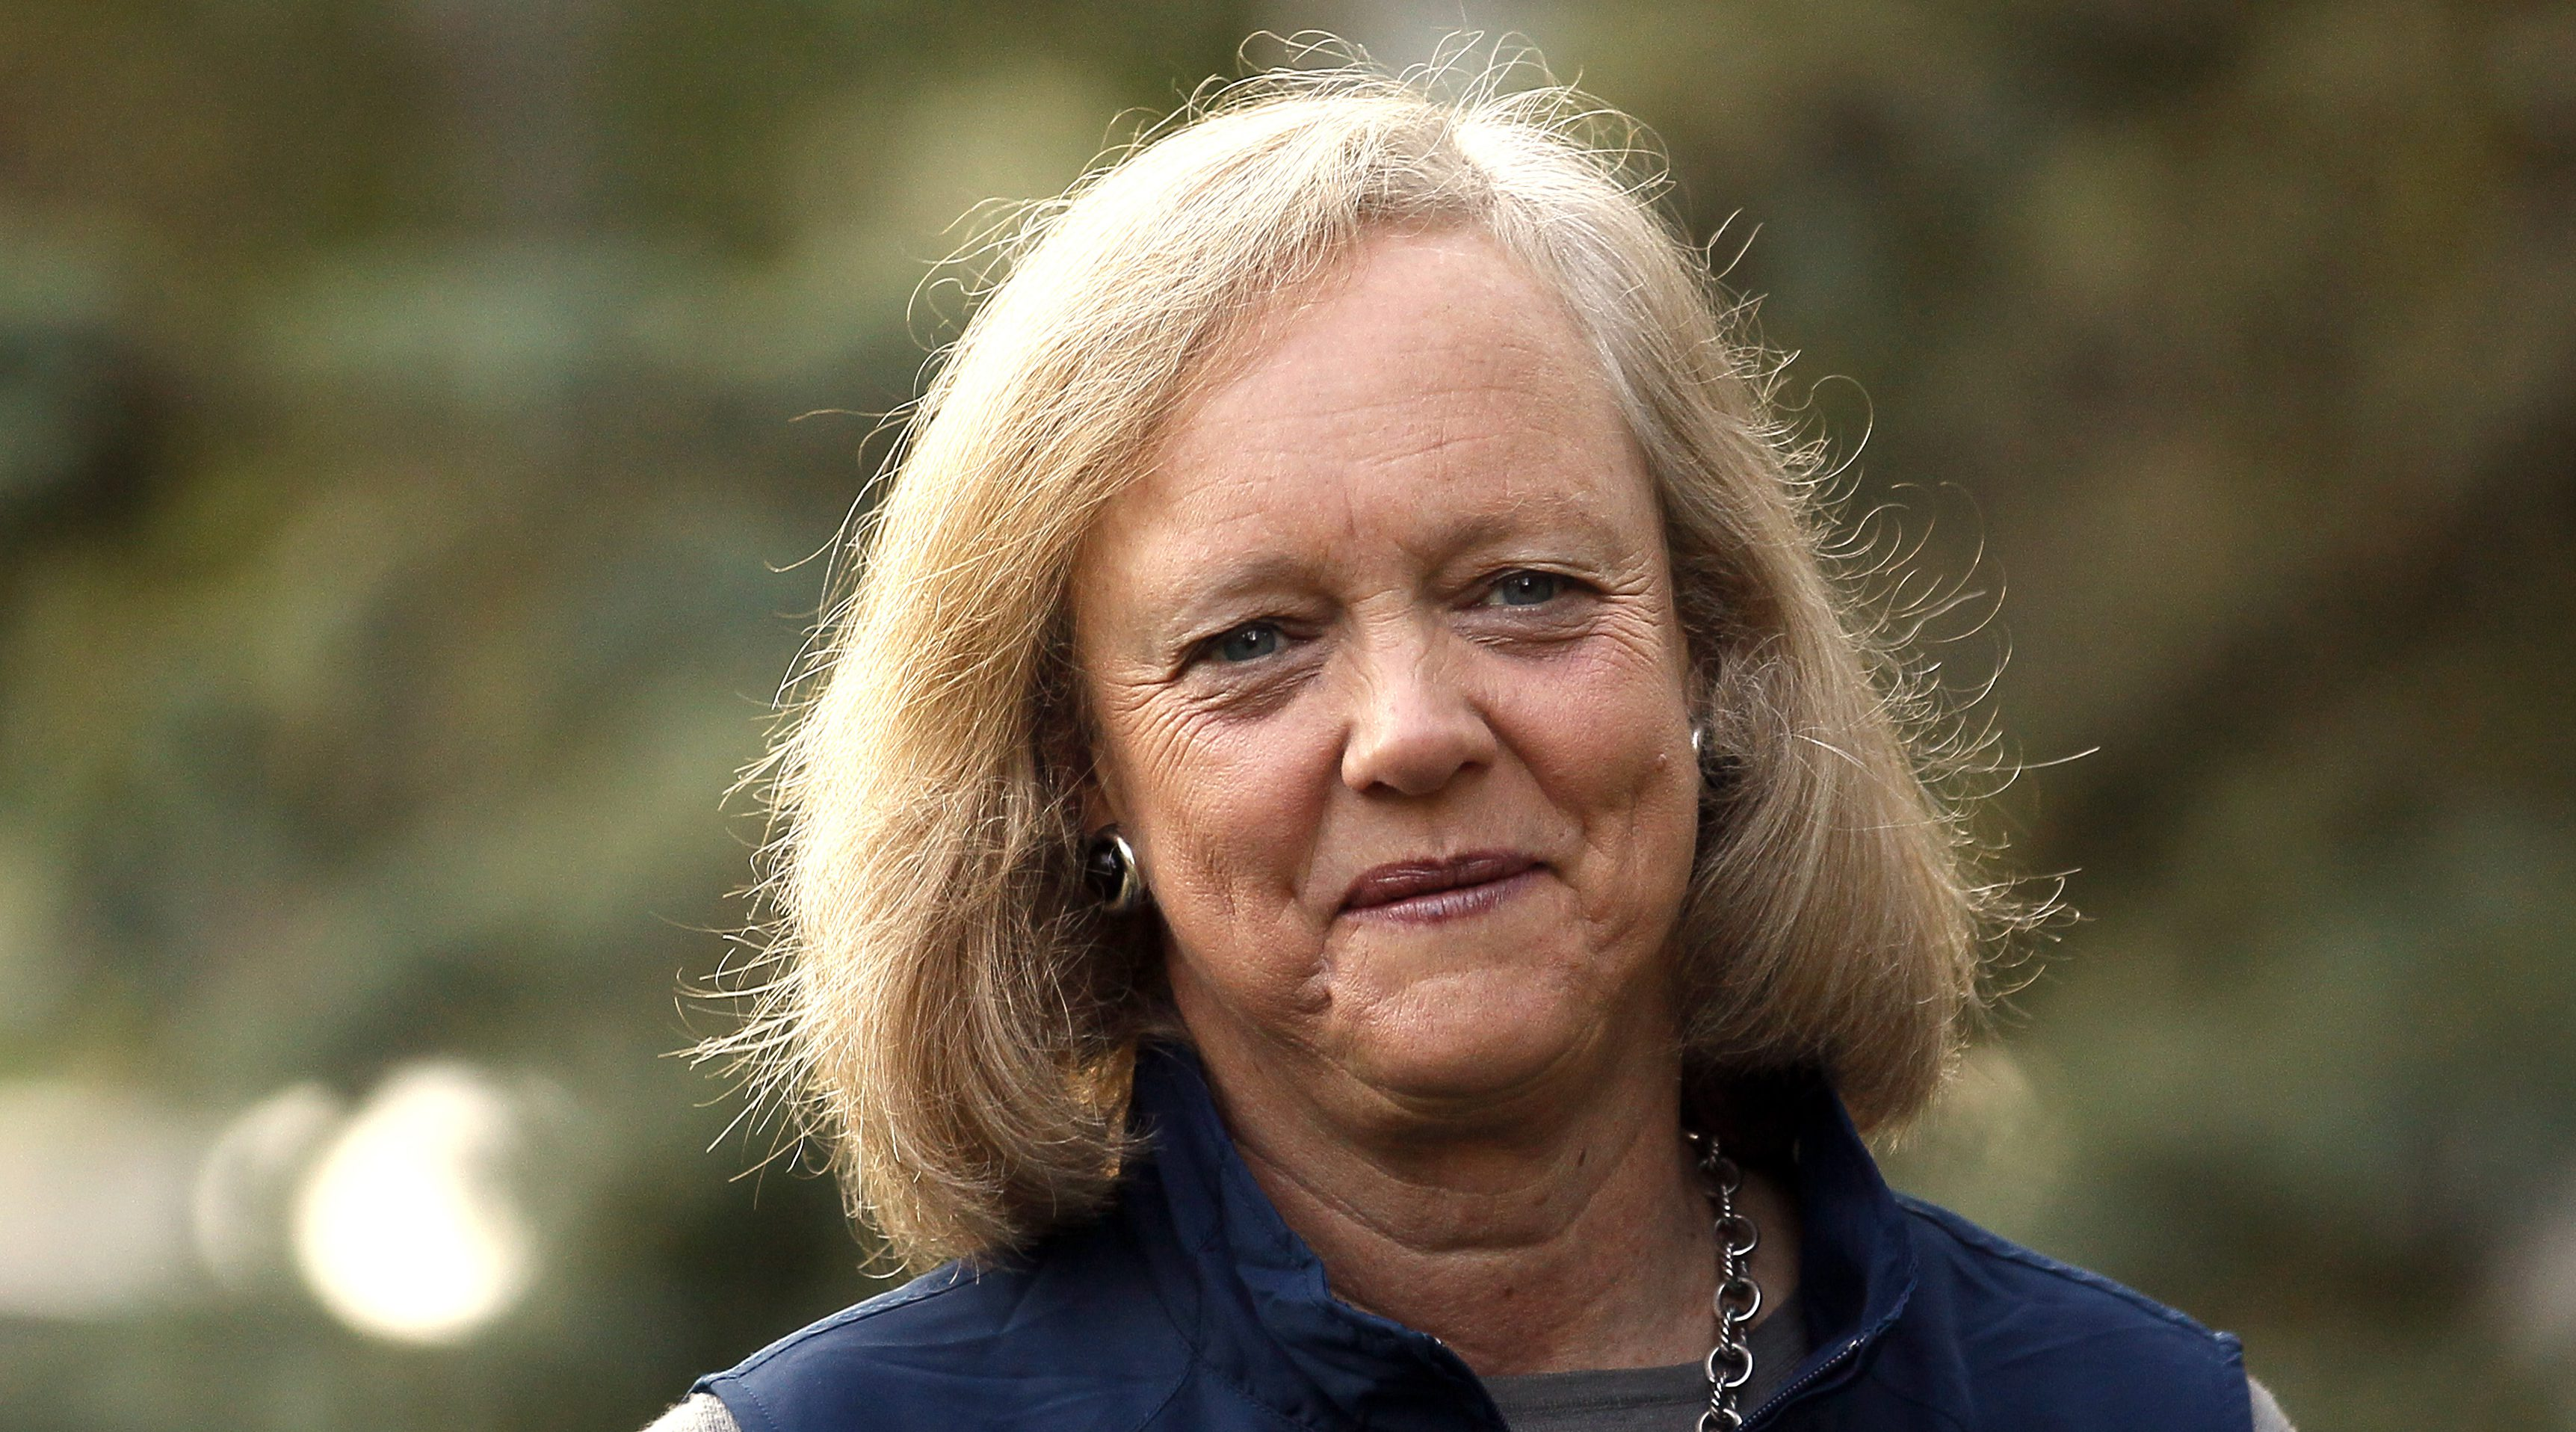 Meg Whitman, CEO of HPE, is stepping down.